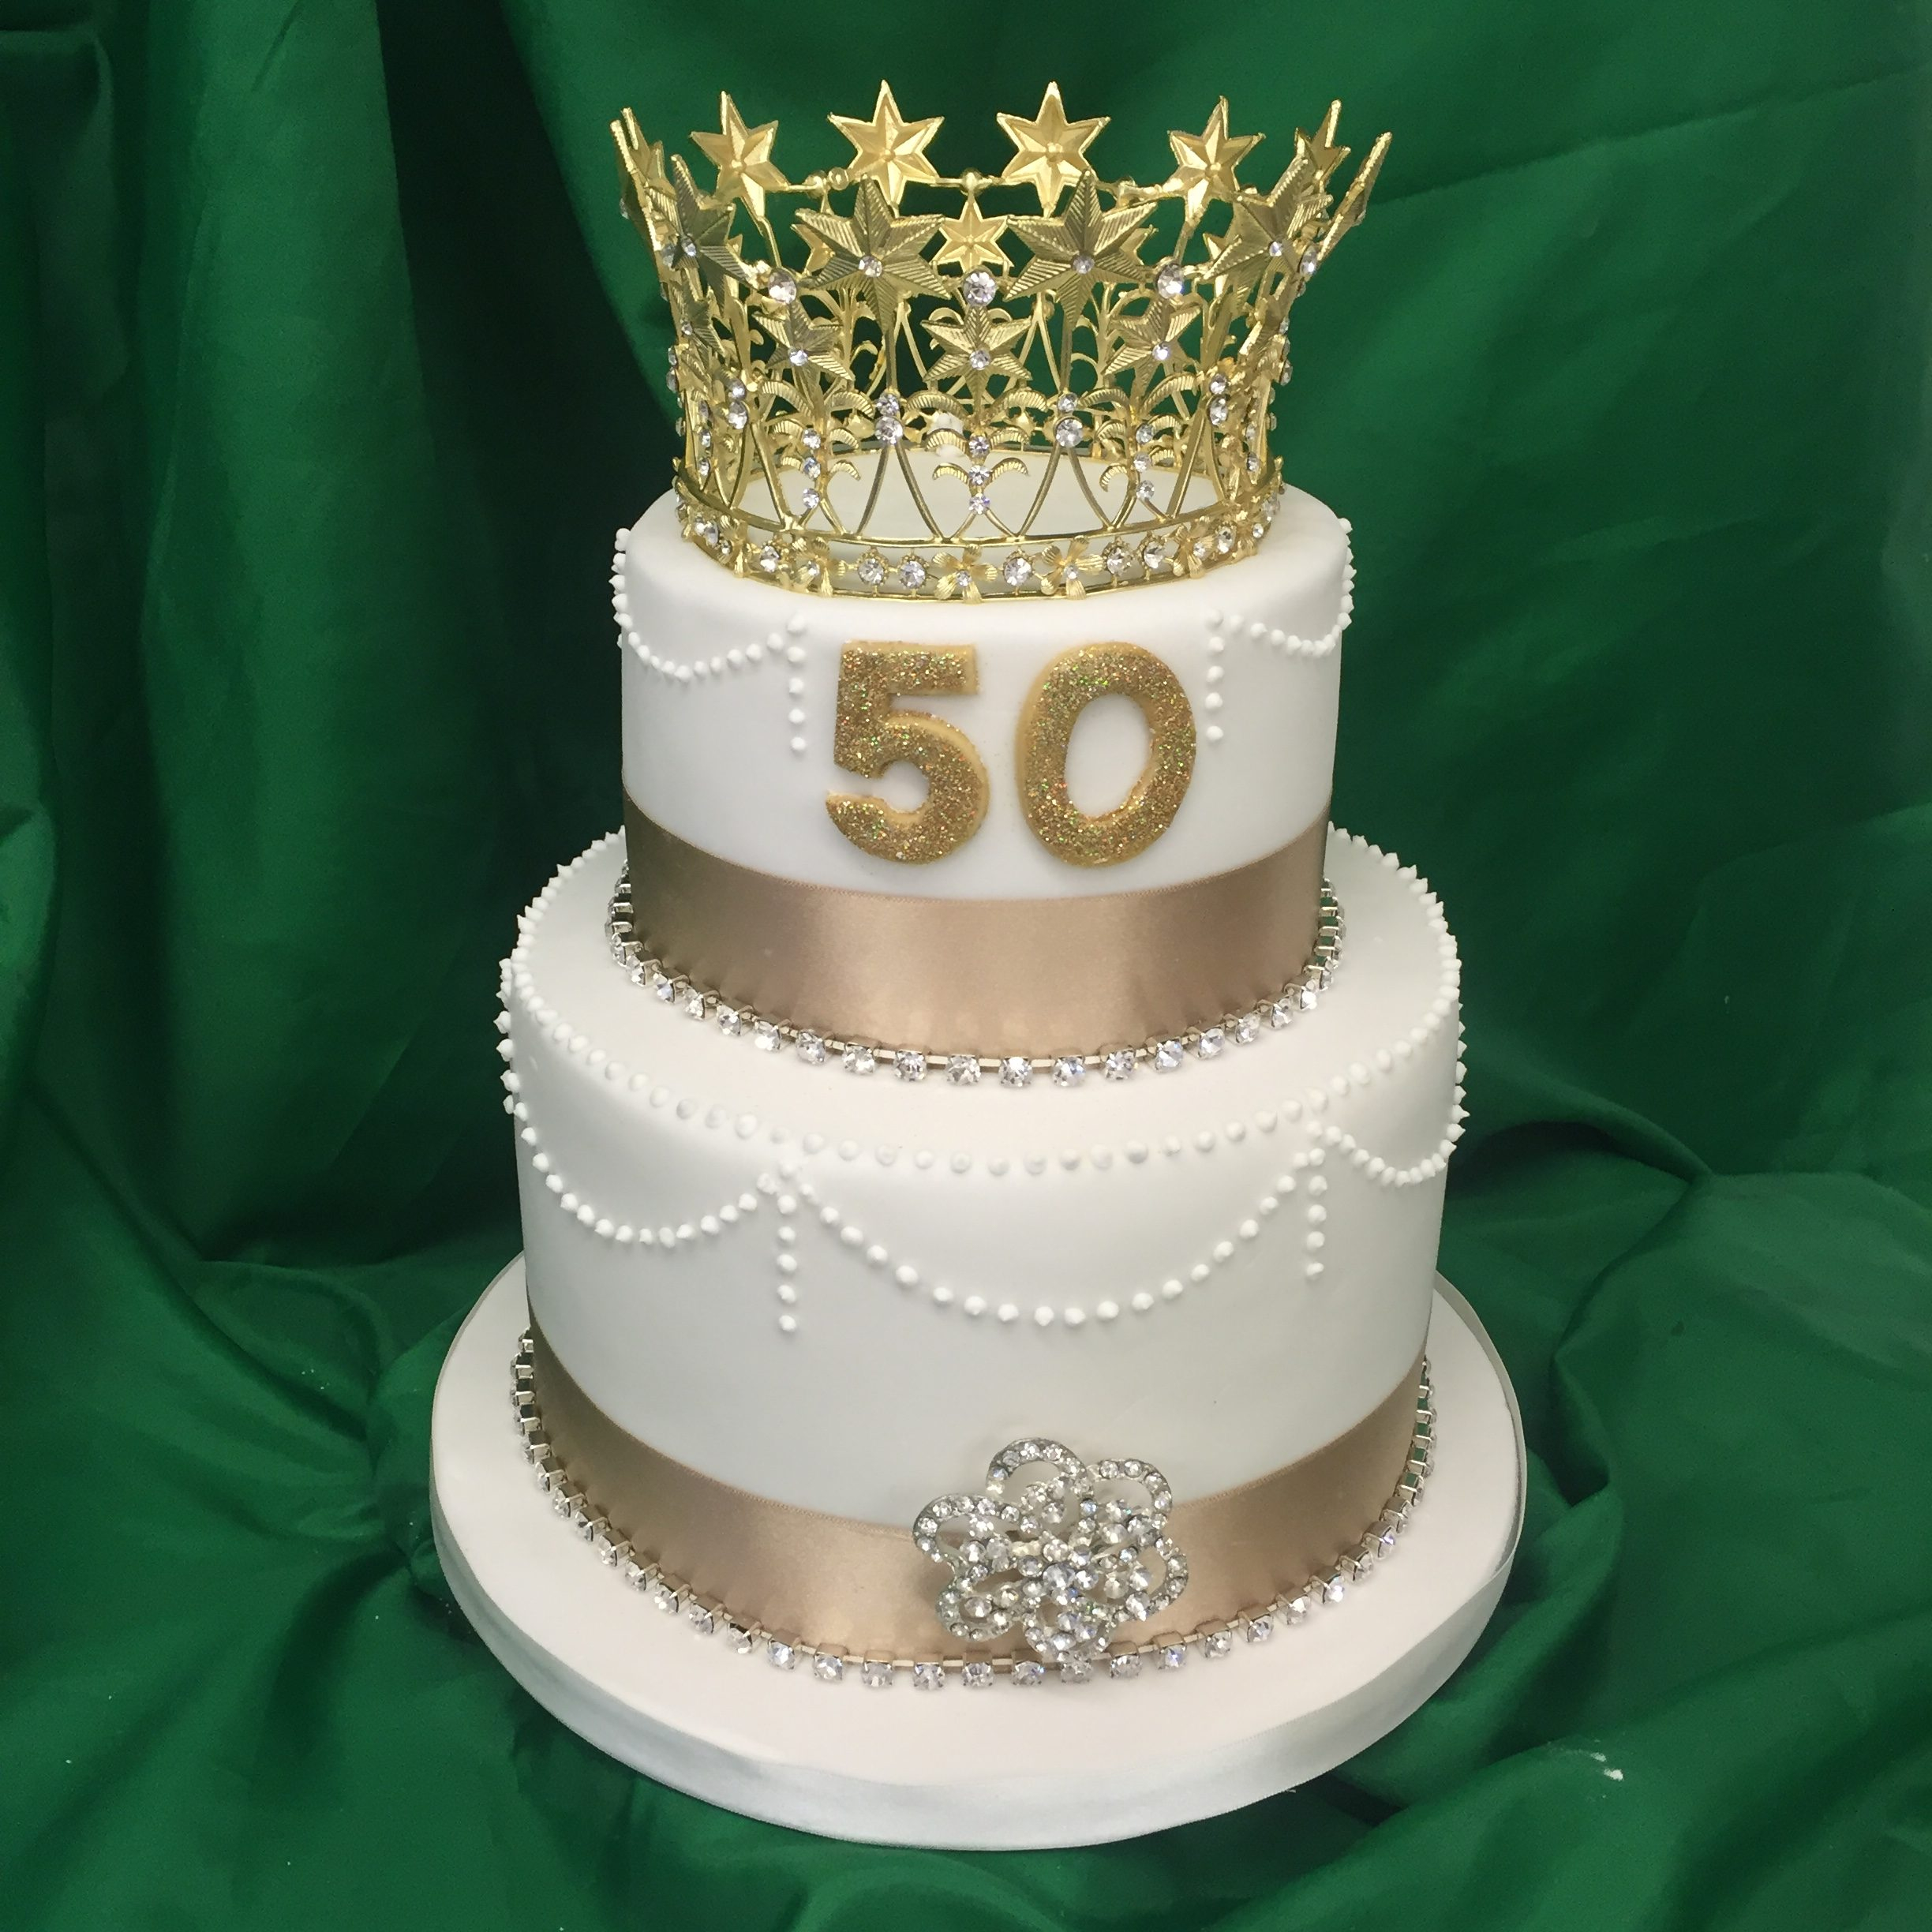 Two Tier Birthday Cake 2 Tier 50th Birthday Cake M Rays Bakery